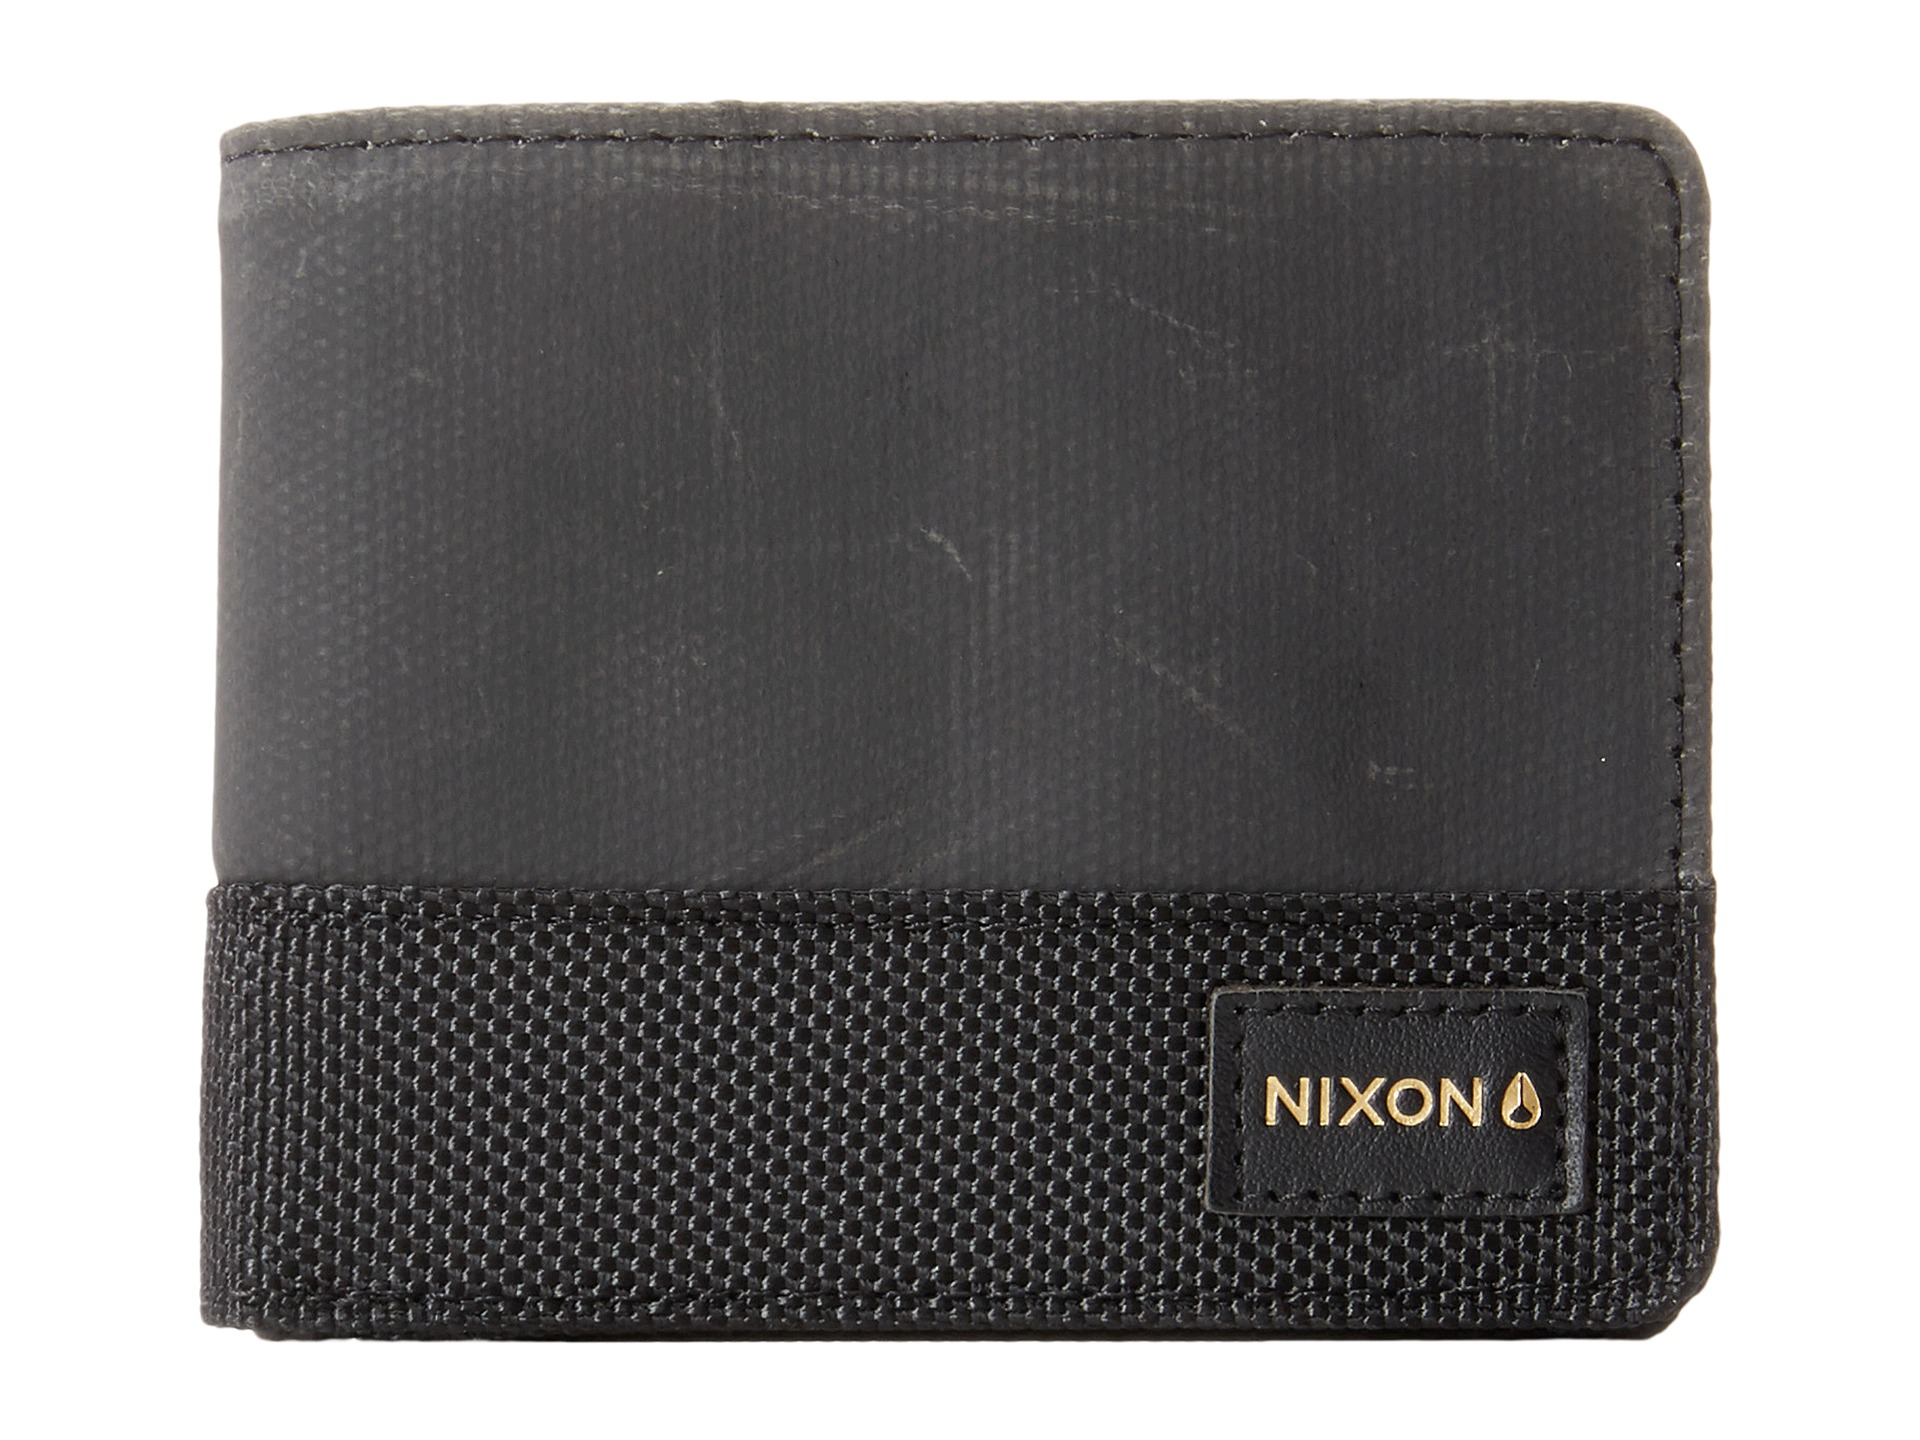 Lyst - Nixon Black Origami Arc Bi-fold Coin Purse in Black for Men bb997bf1923